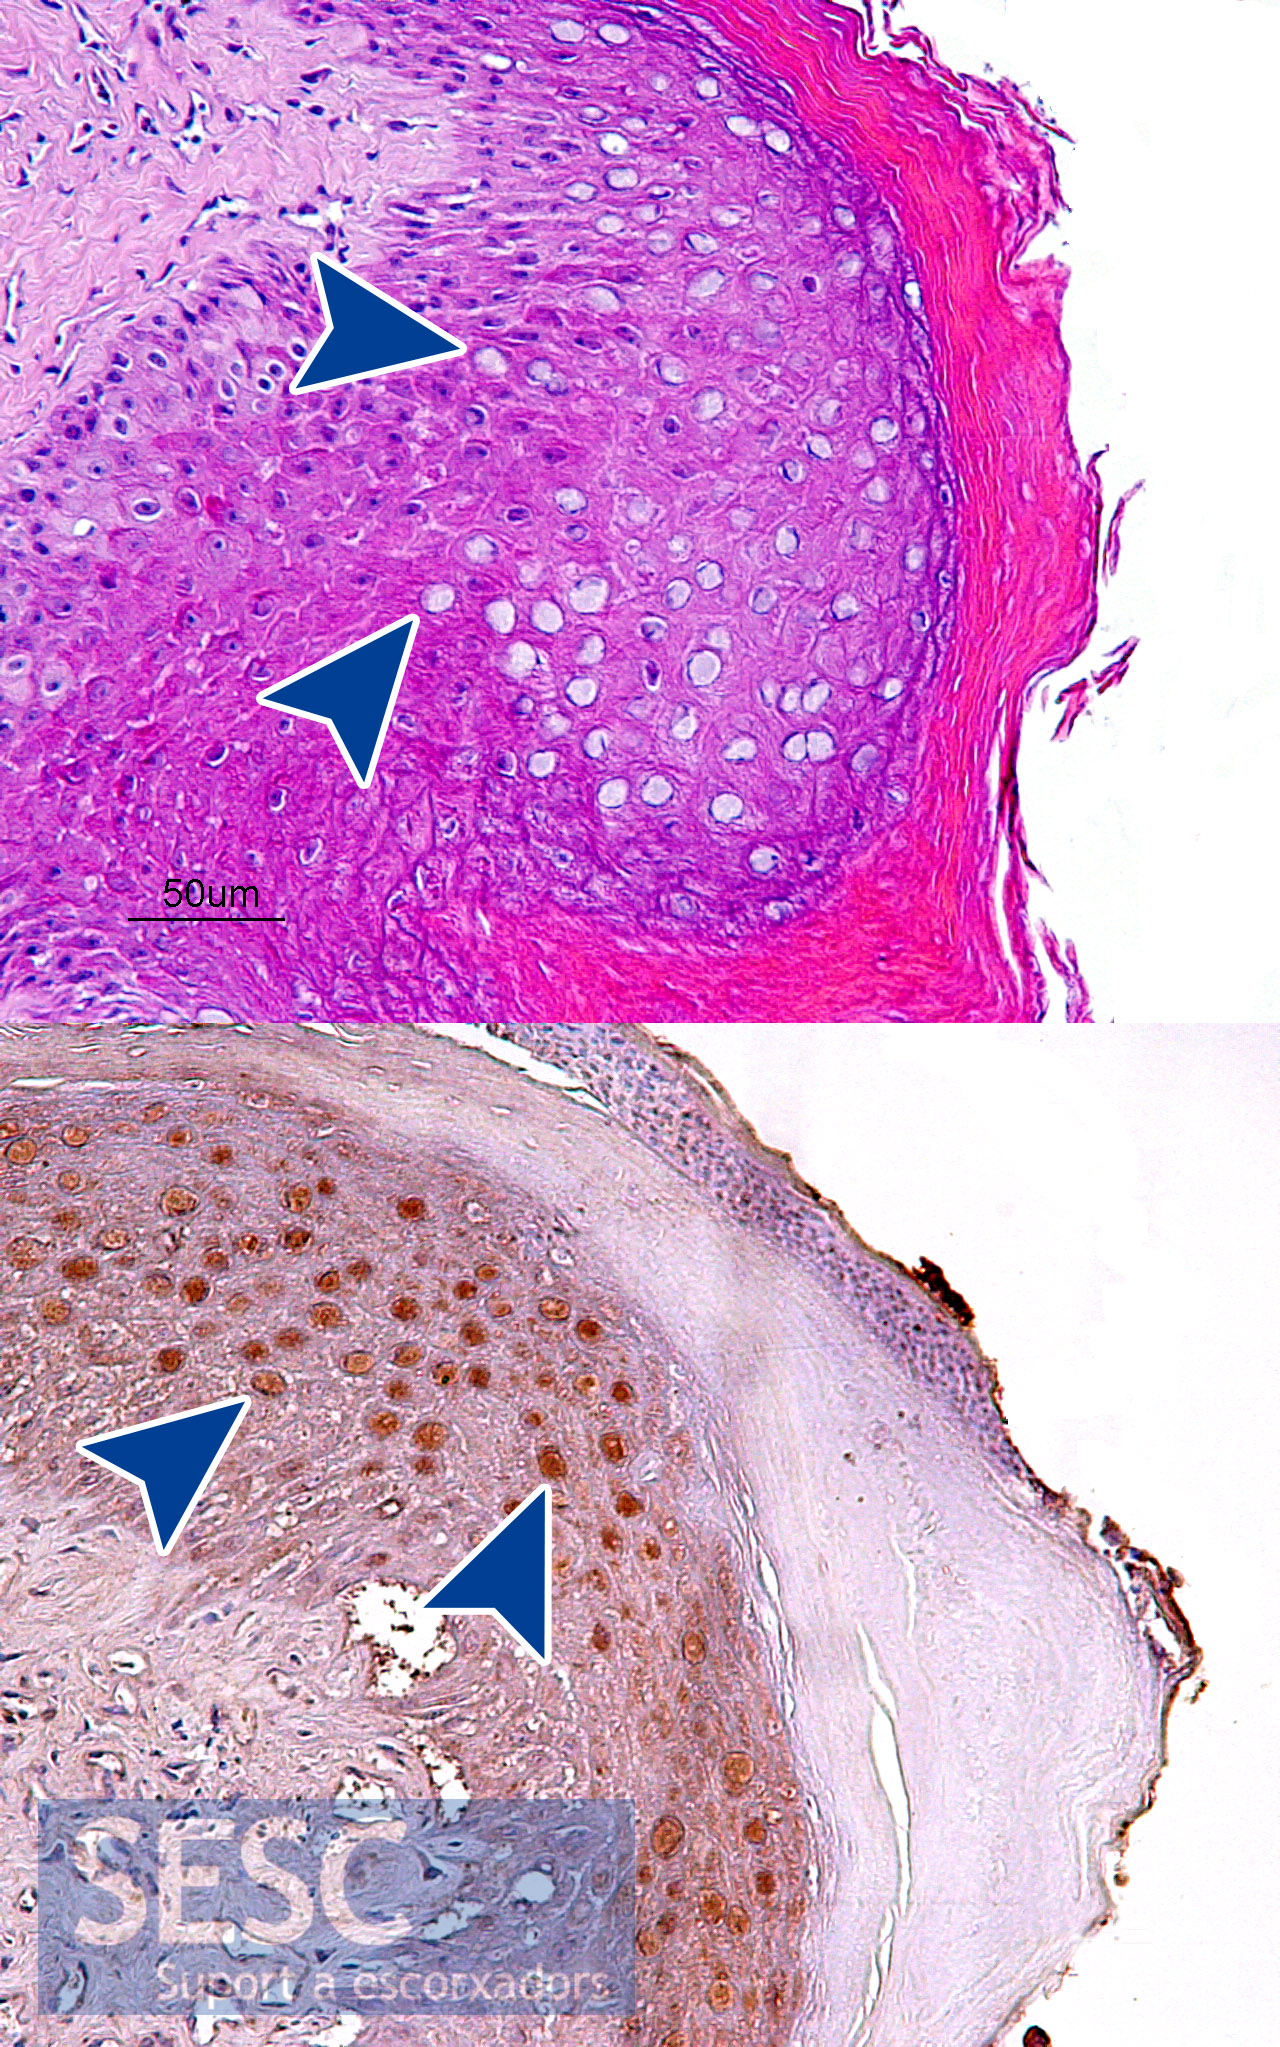 cancer colon depistage hpv males vaccination